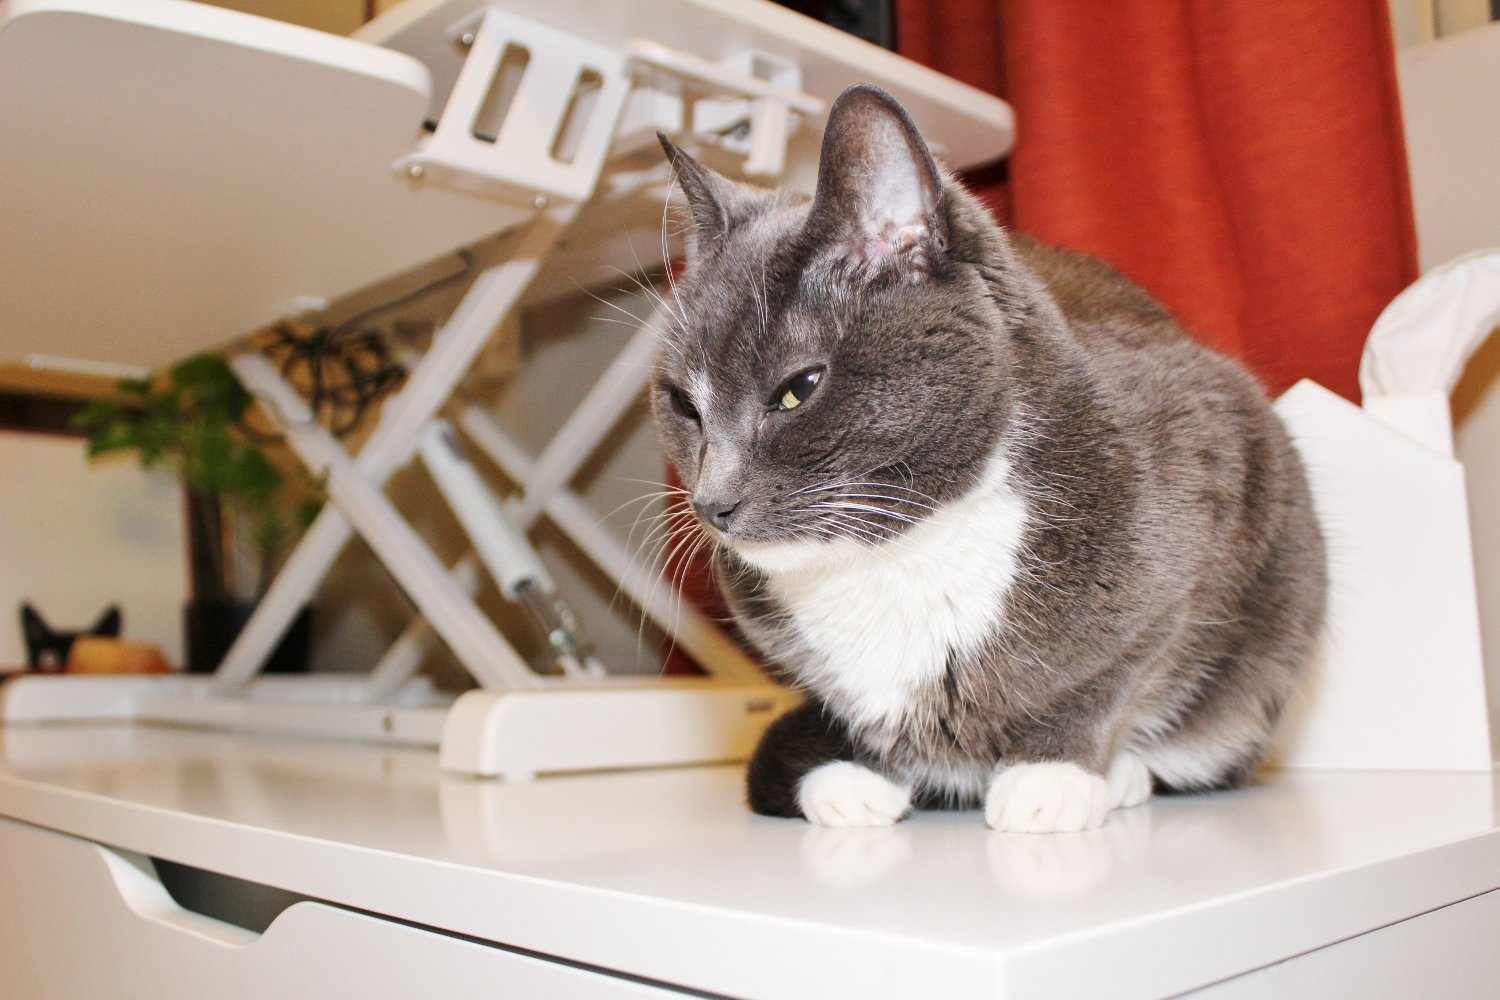 Cat on desk with standing desk converter in background